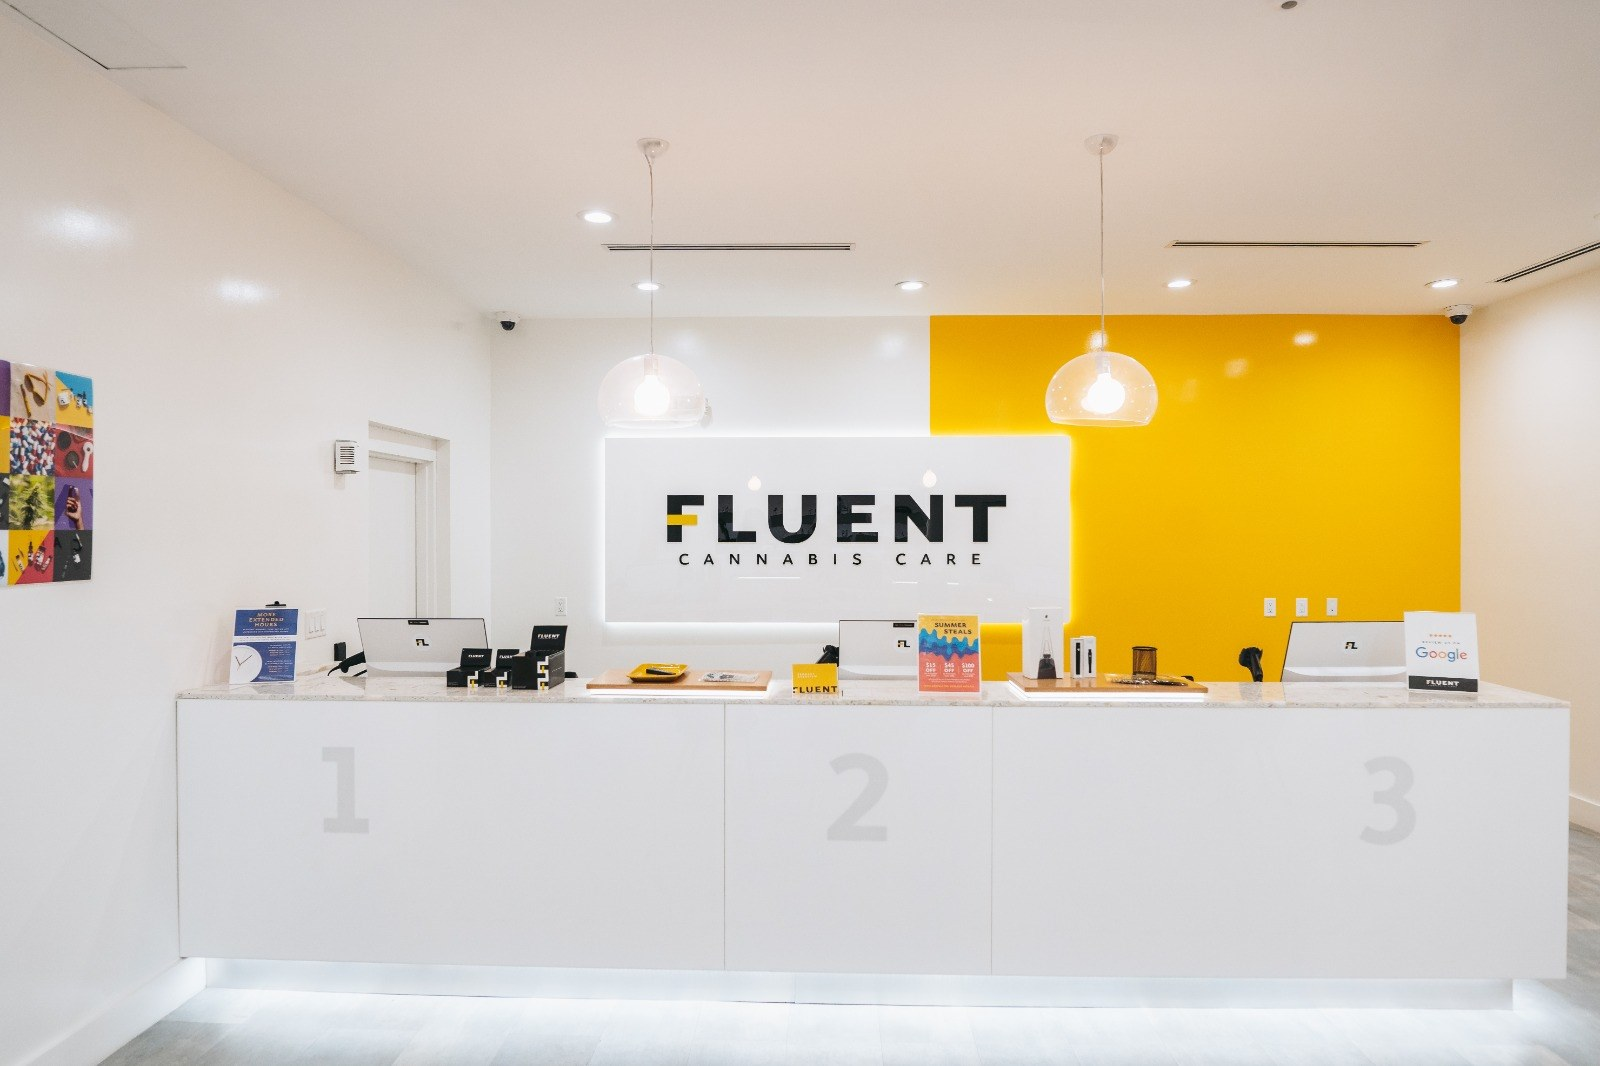 Fluent Dispensary has 21 Locations in Florida with Plans for Expansion